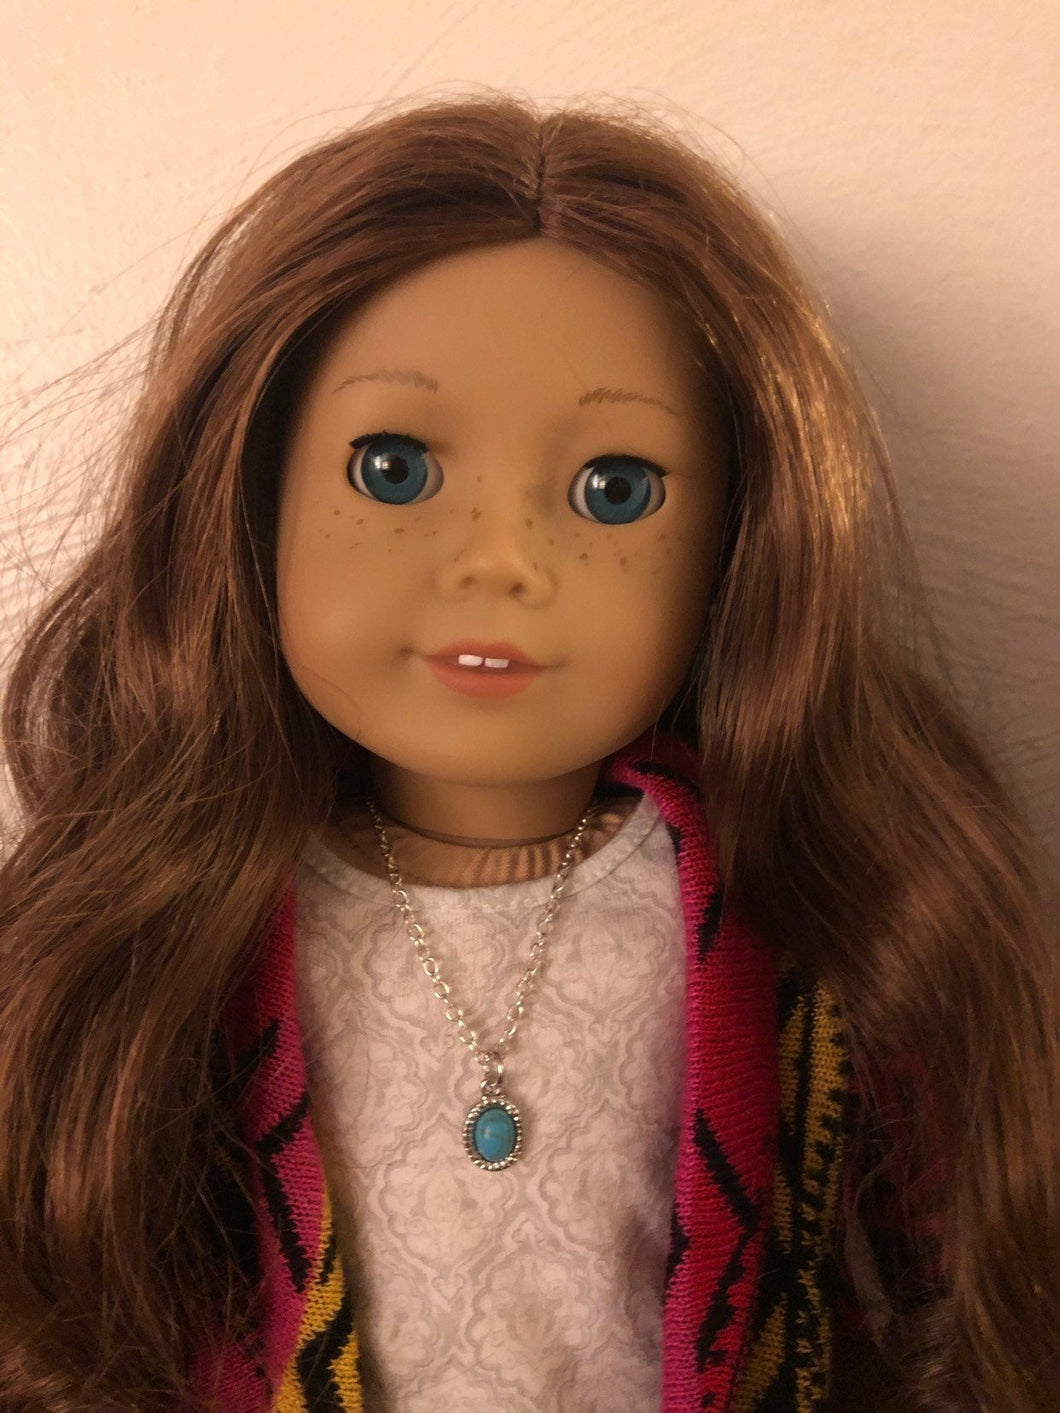 Turquoise Charm Necklace for American Girl Dolls